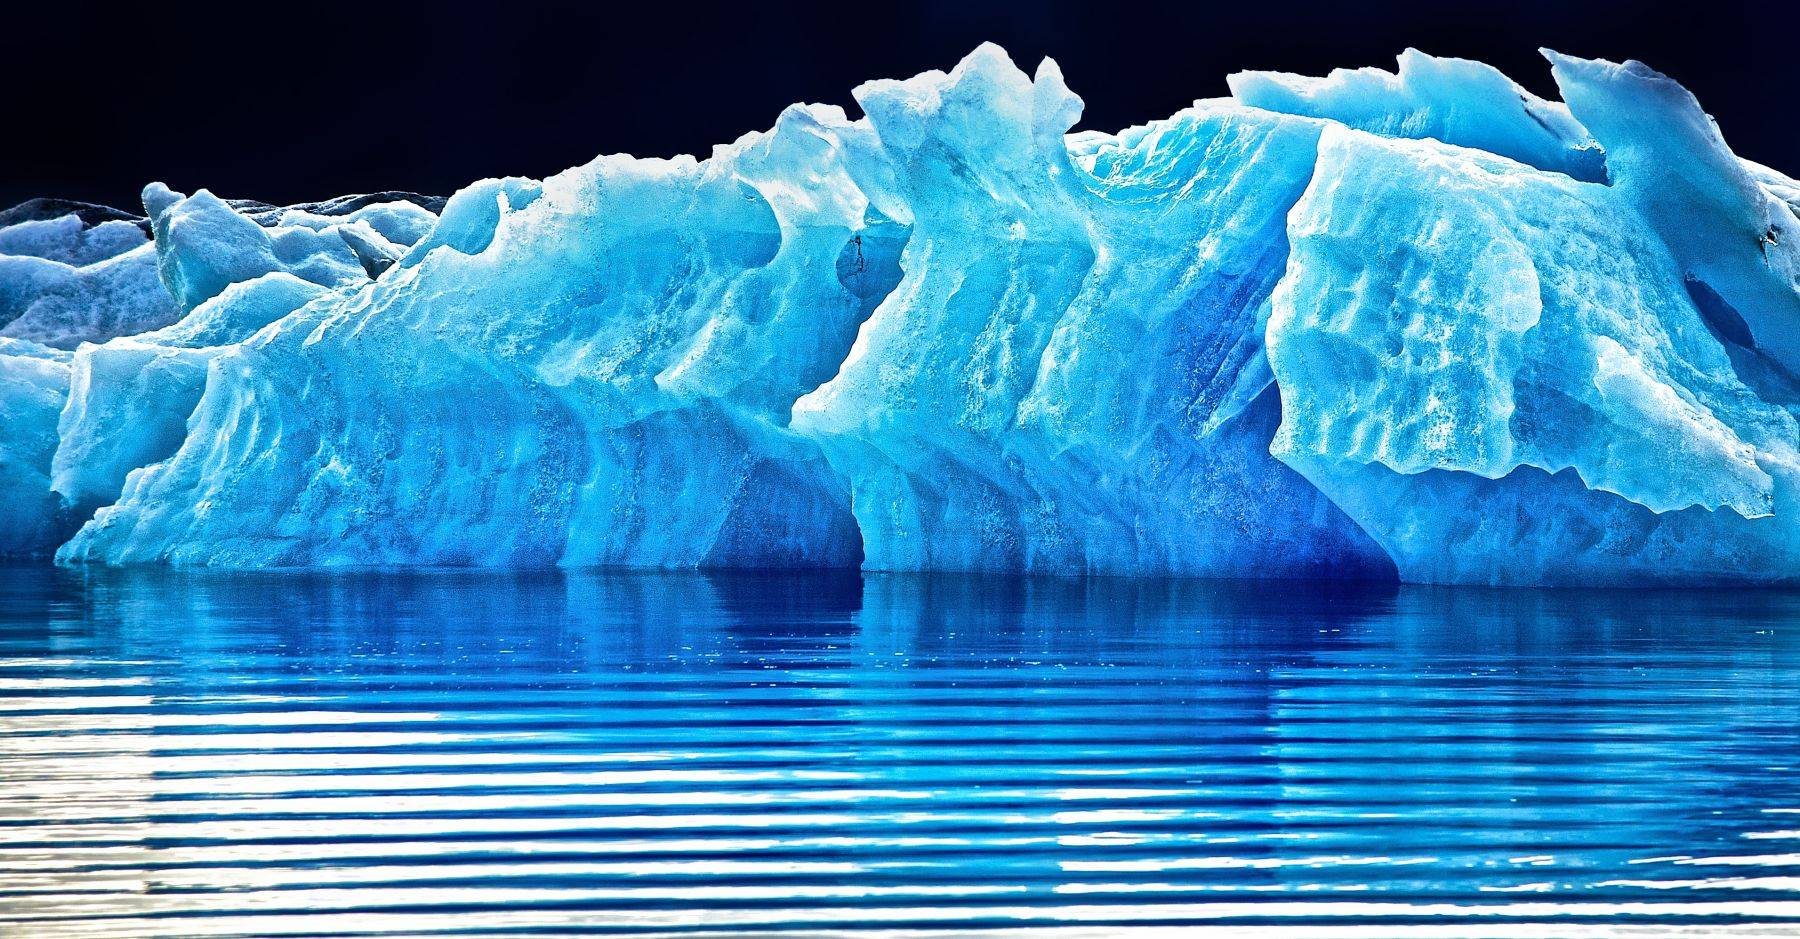 1_0_246_1iceland_rodanuri_com_floating_ice__6_.jpg